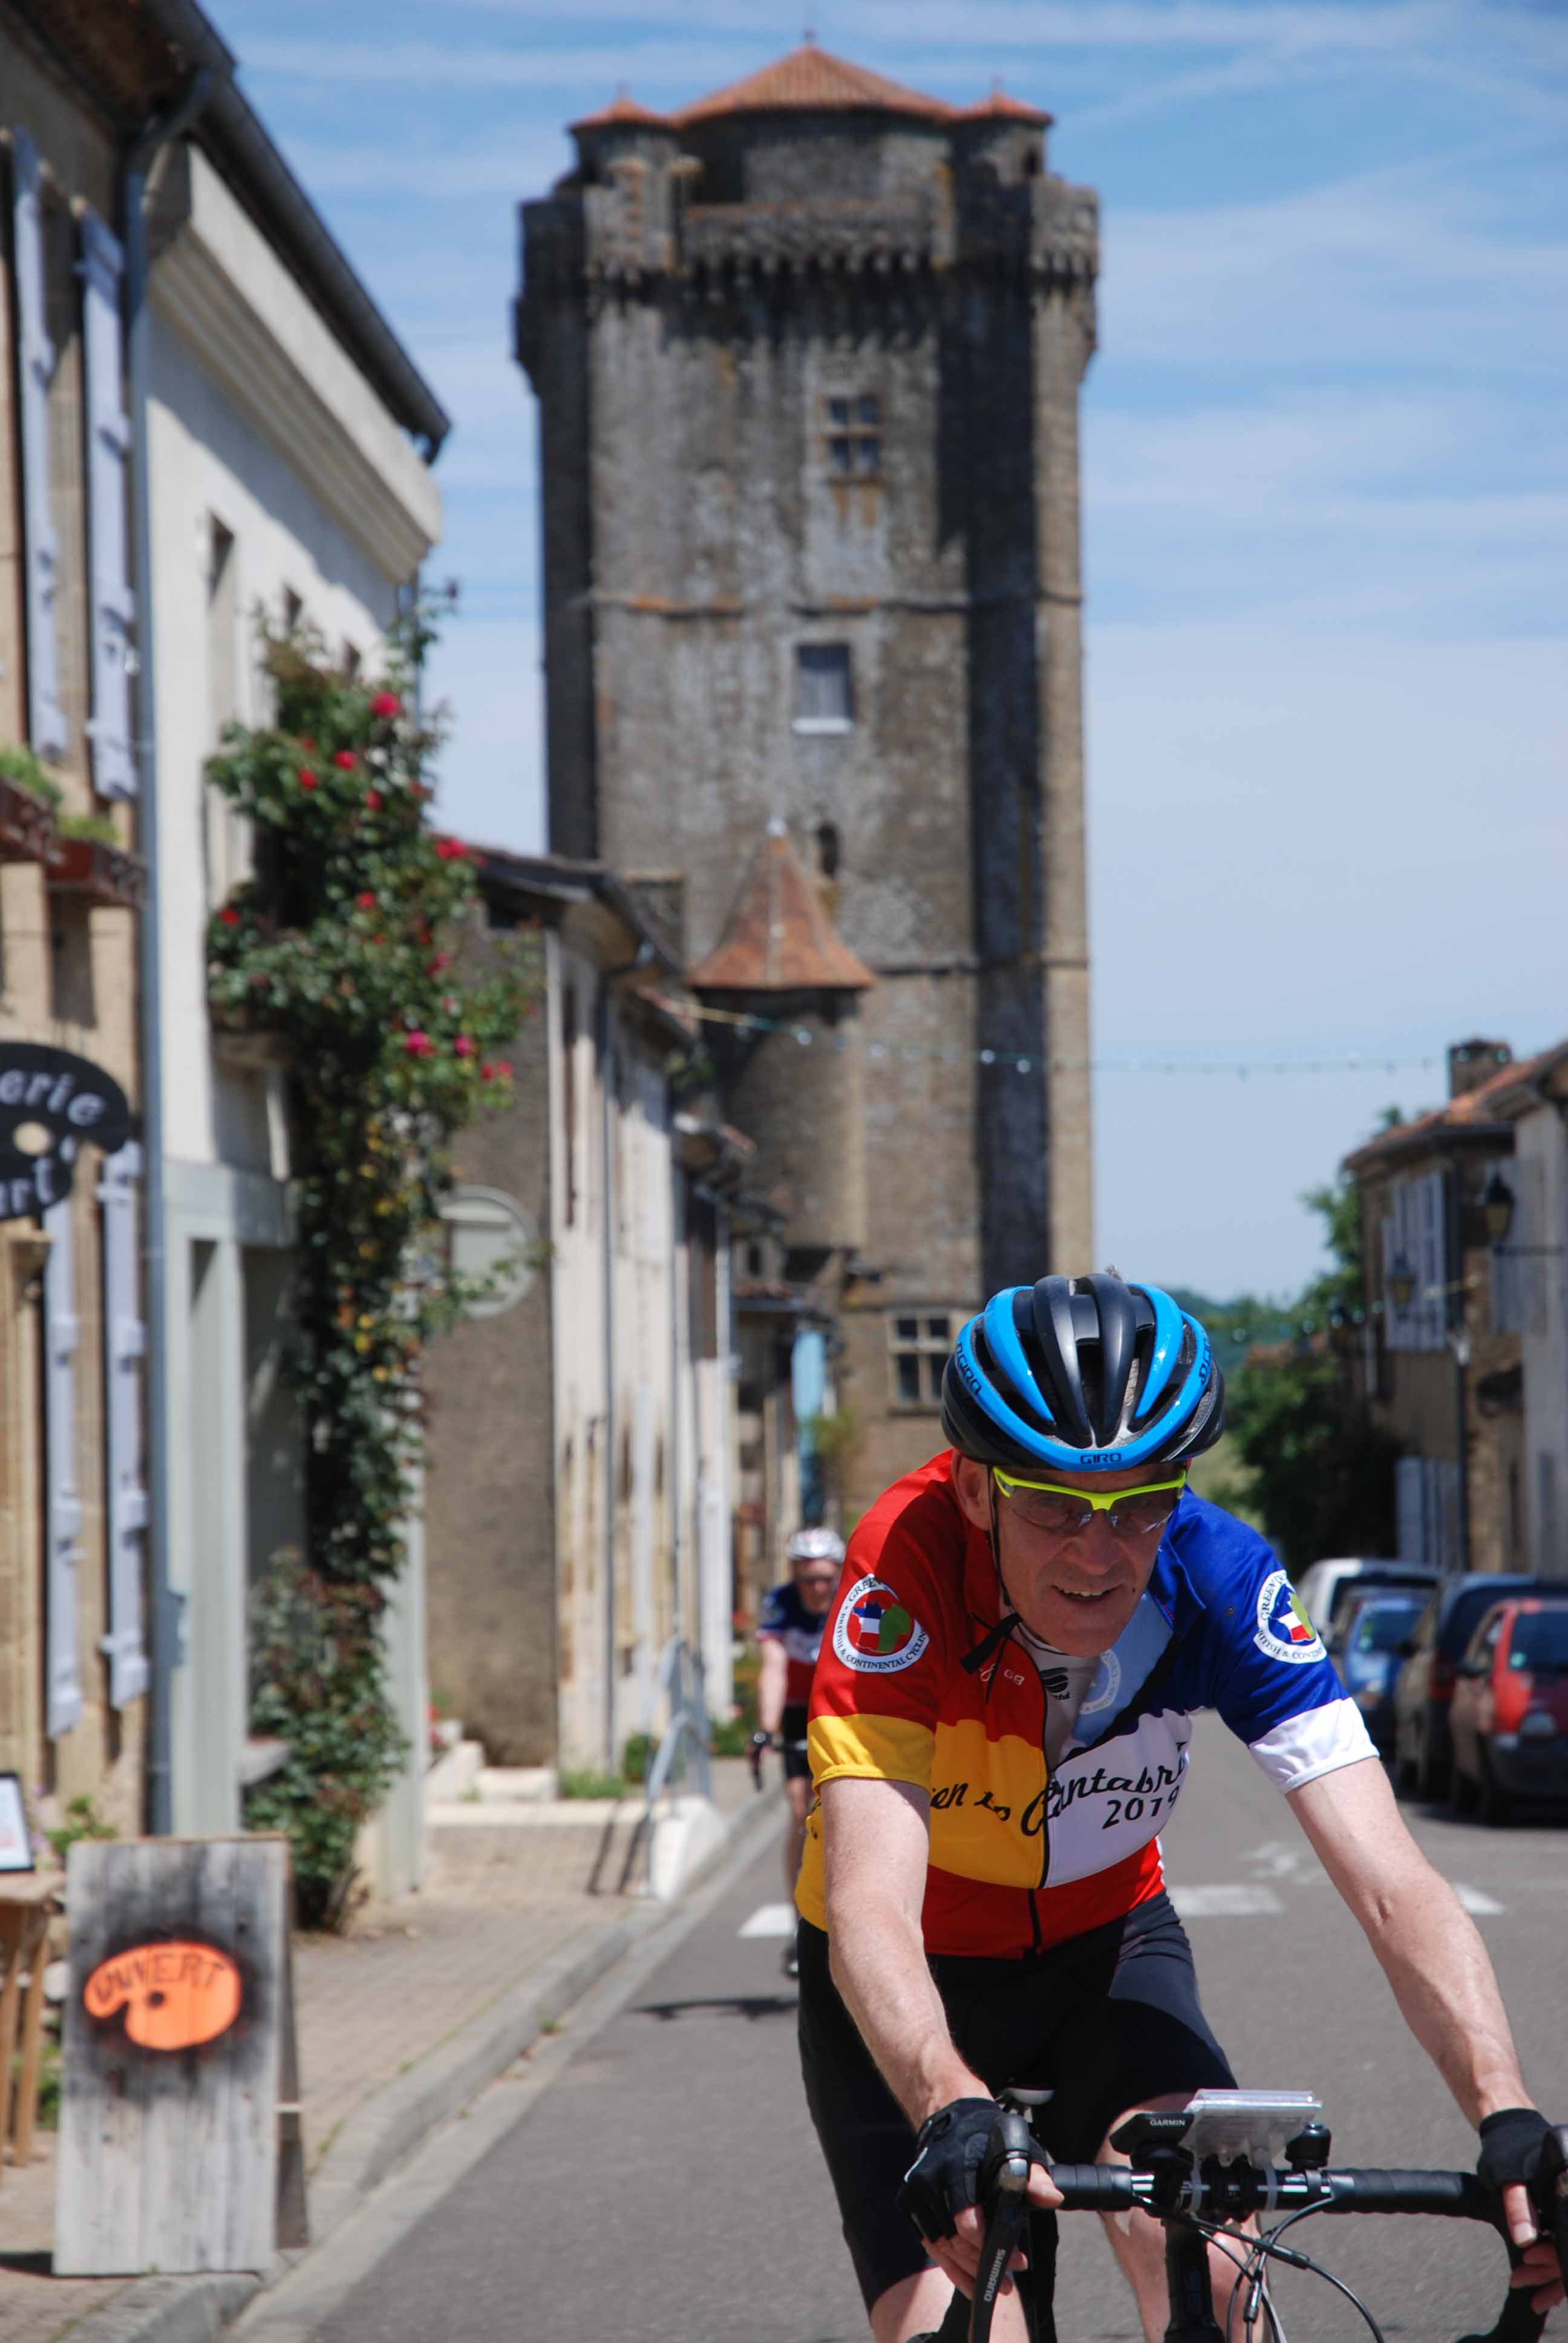 Riding into a mediaeval bastide (fortified) village in Gascony.